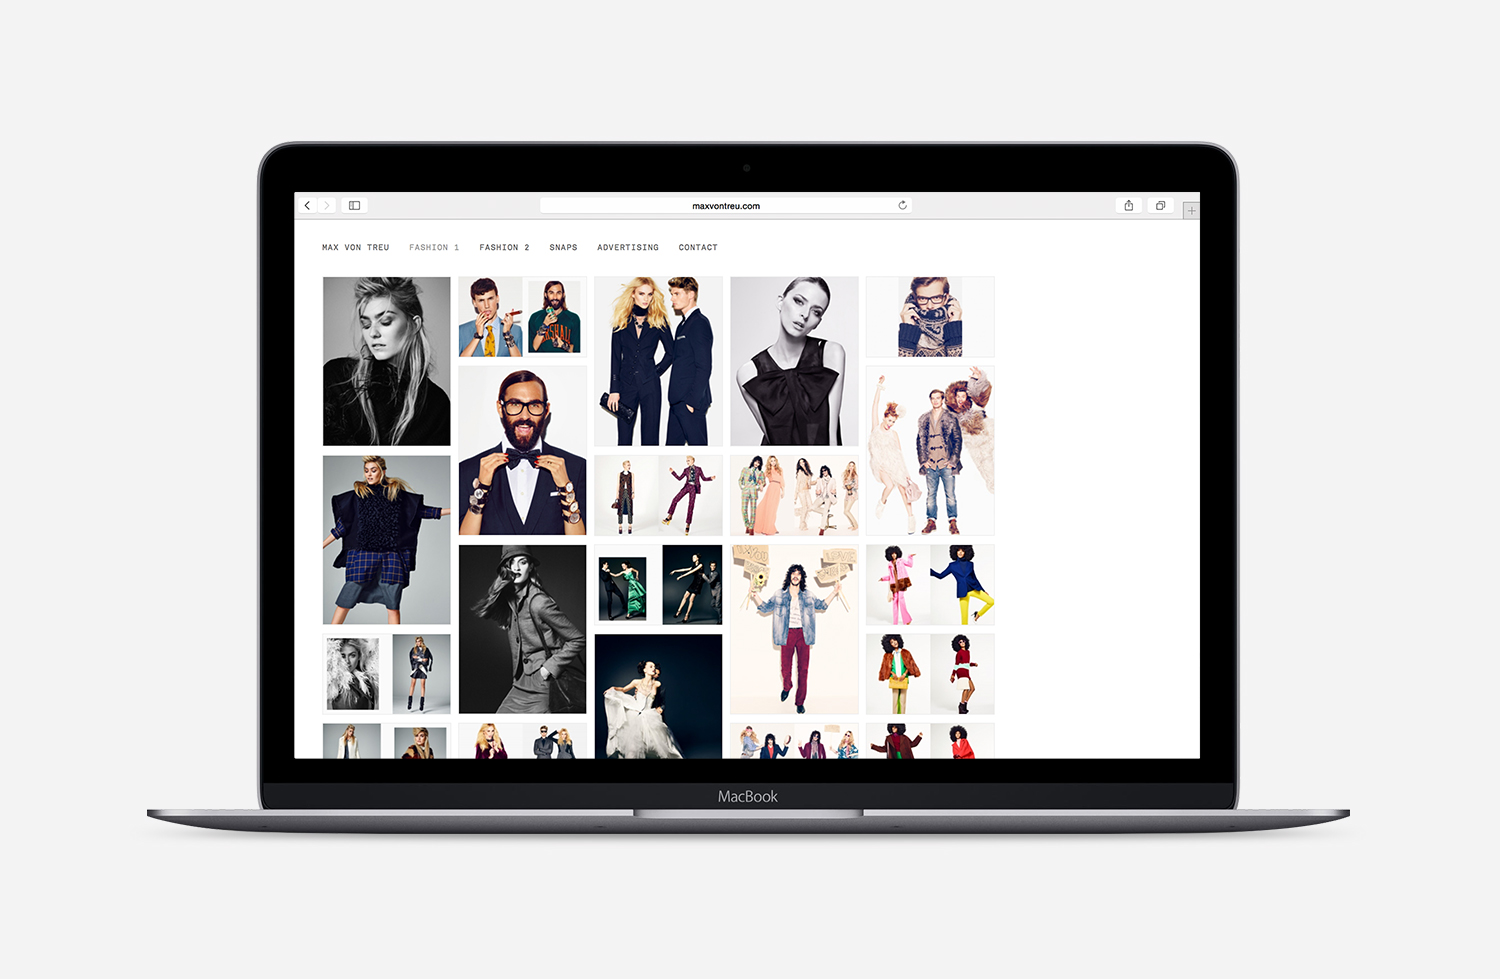 20150408-Max-von-Treu-MacBook-2Fashion